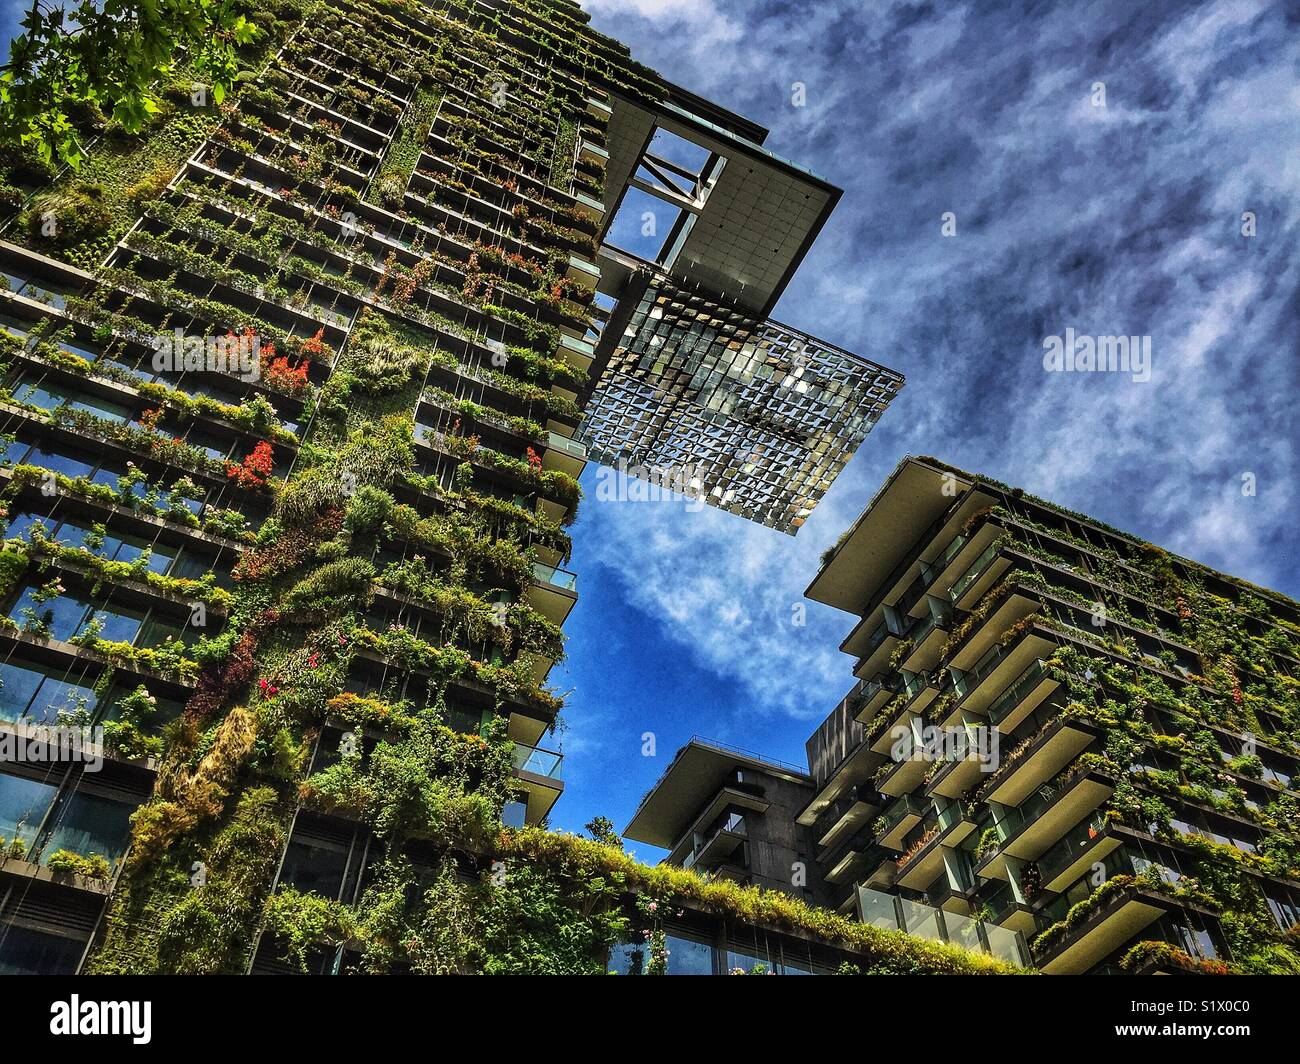 Central Park, a major mixed-use urban renewal project located on Broadway, Chippendale, in Sydney, Australia - Stock Image